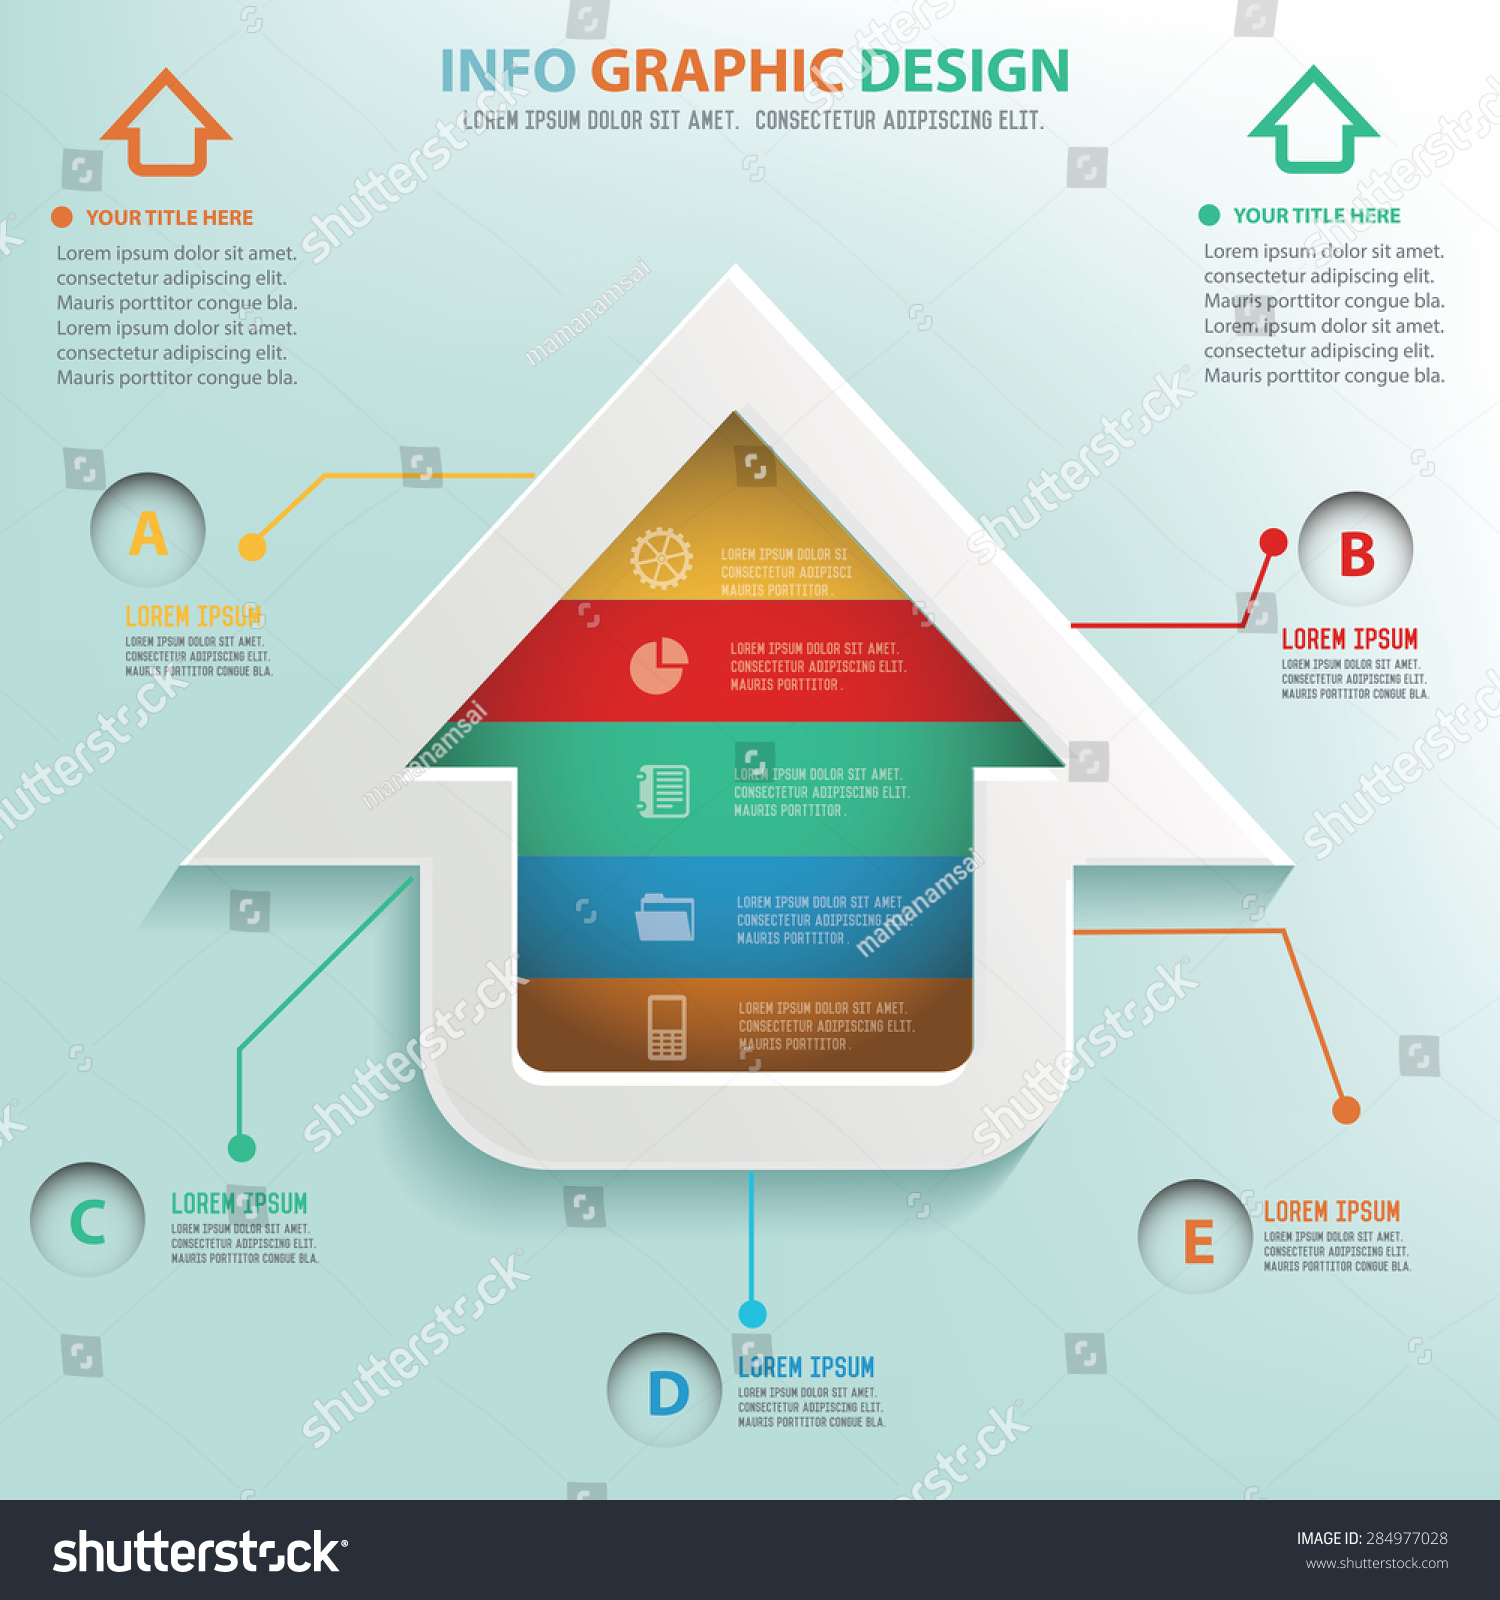 Graphic Design Business At Home Home Info Graphic Design Business Concept  Stock Vector